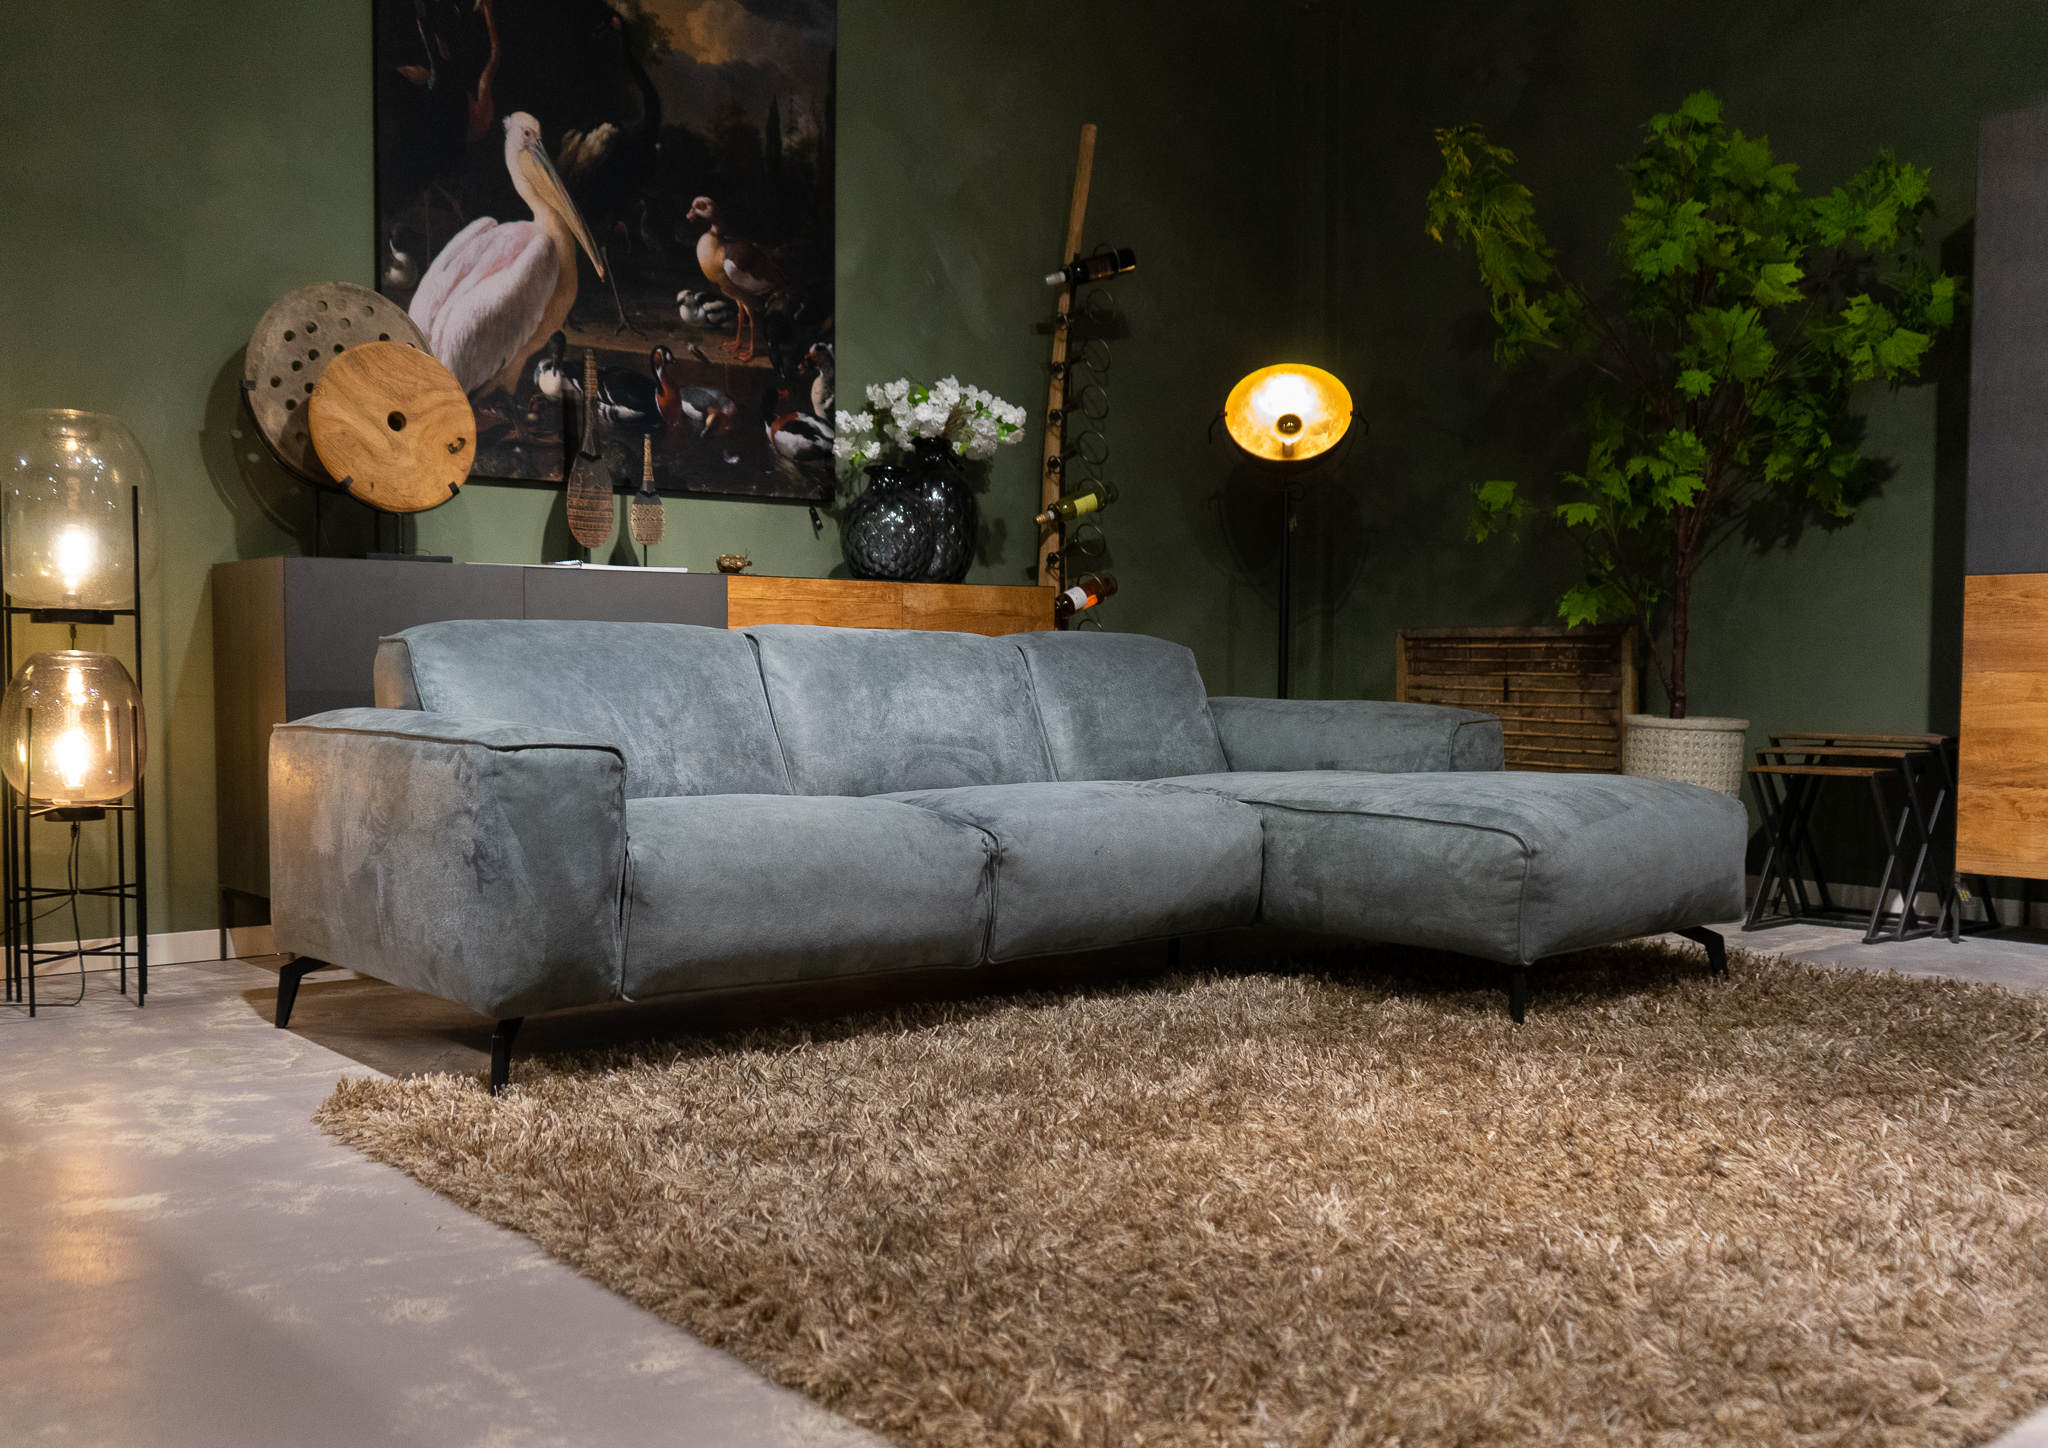 bank met chaise longue